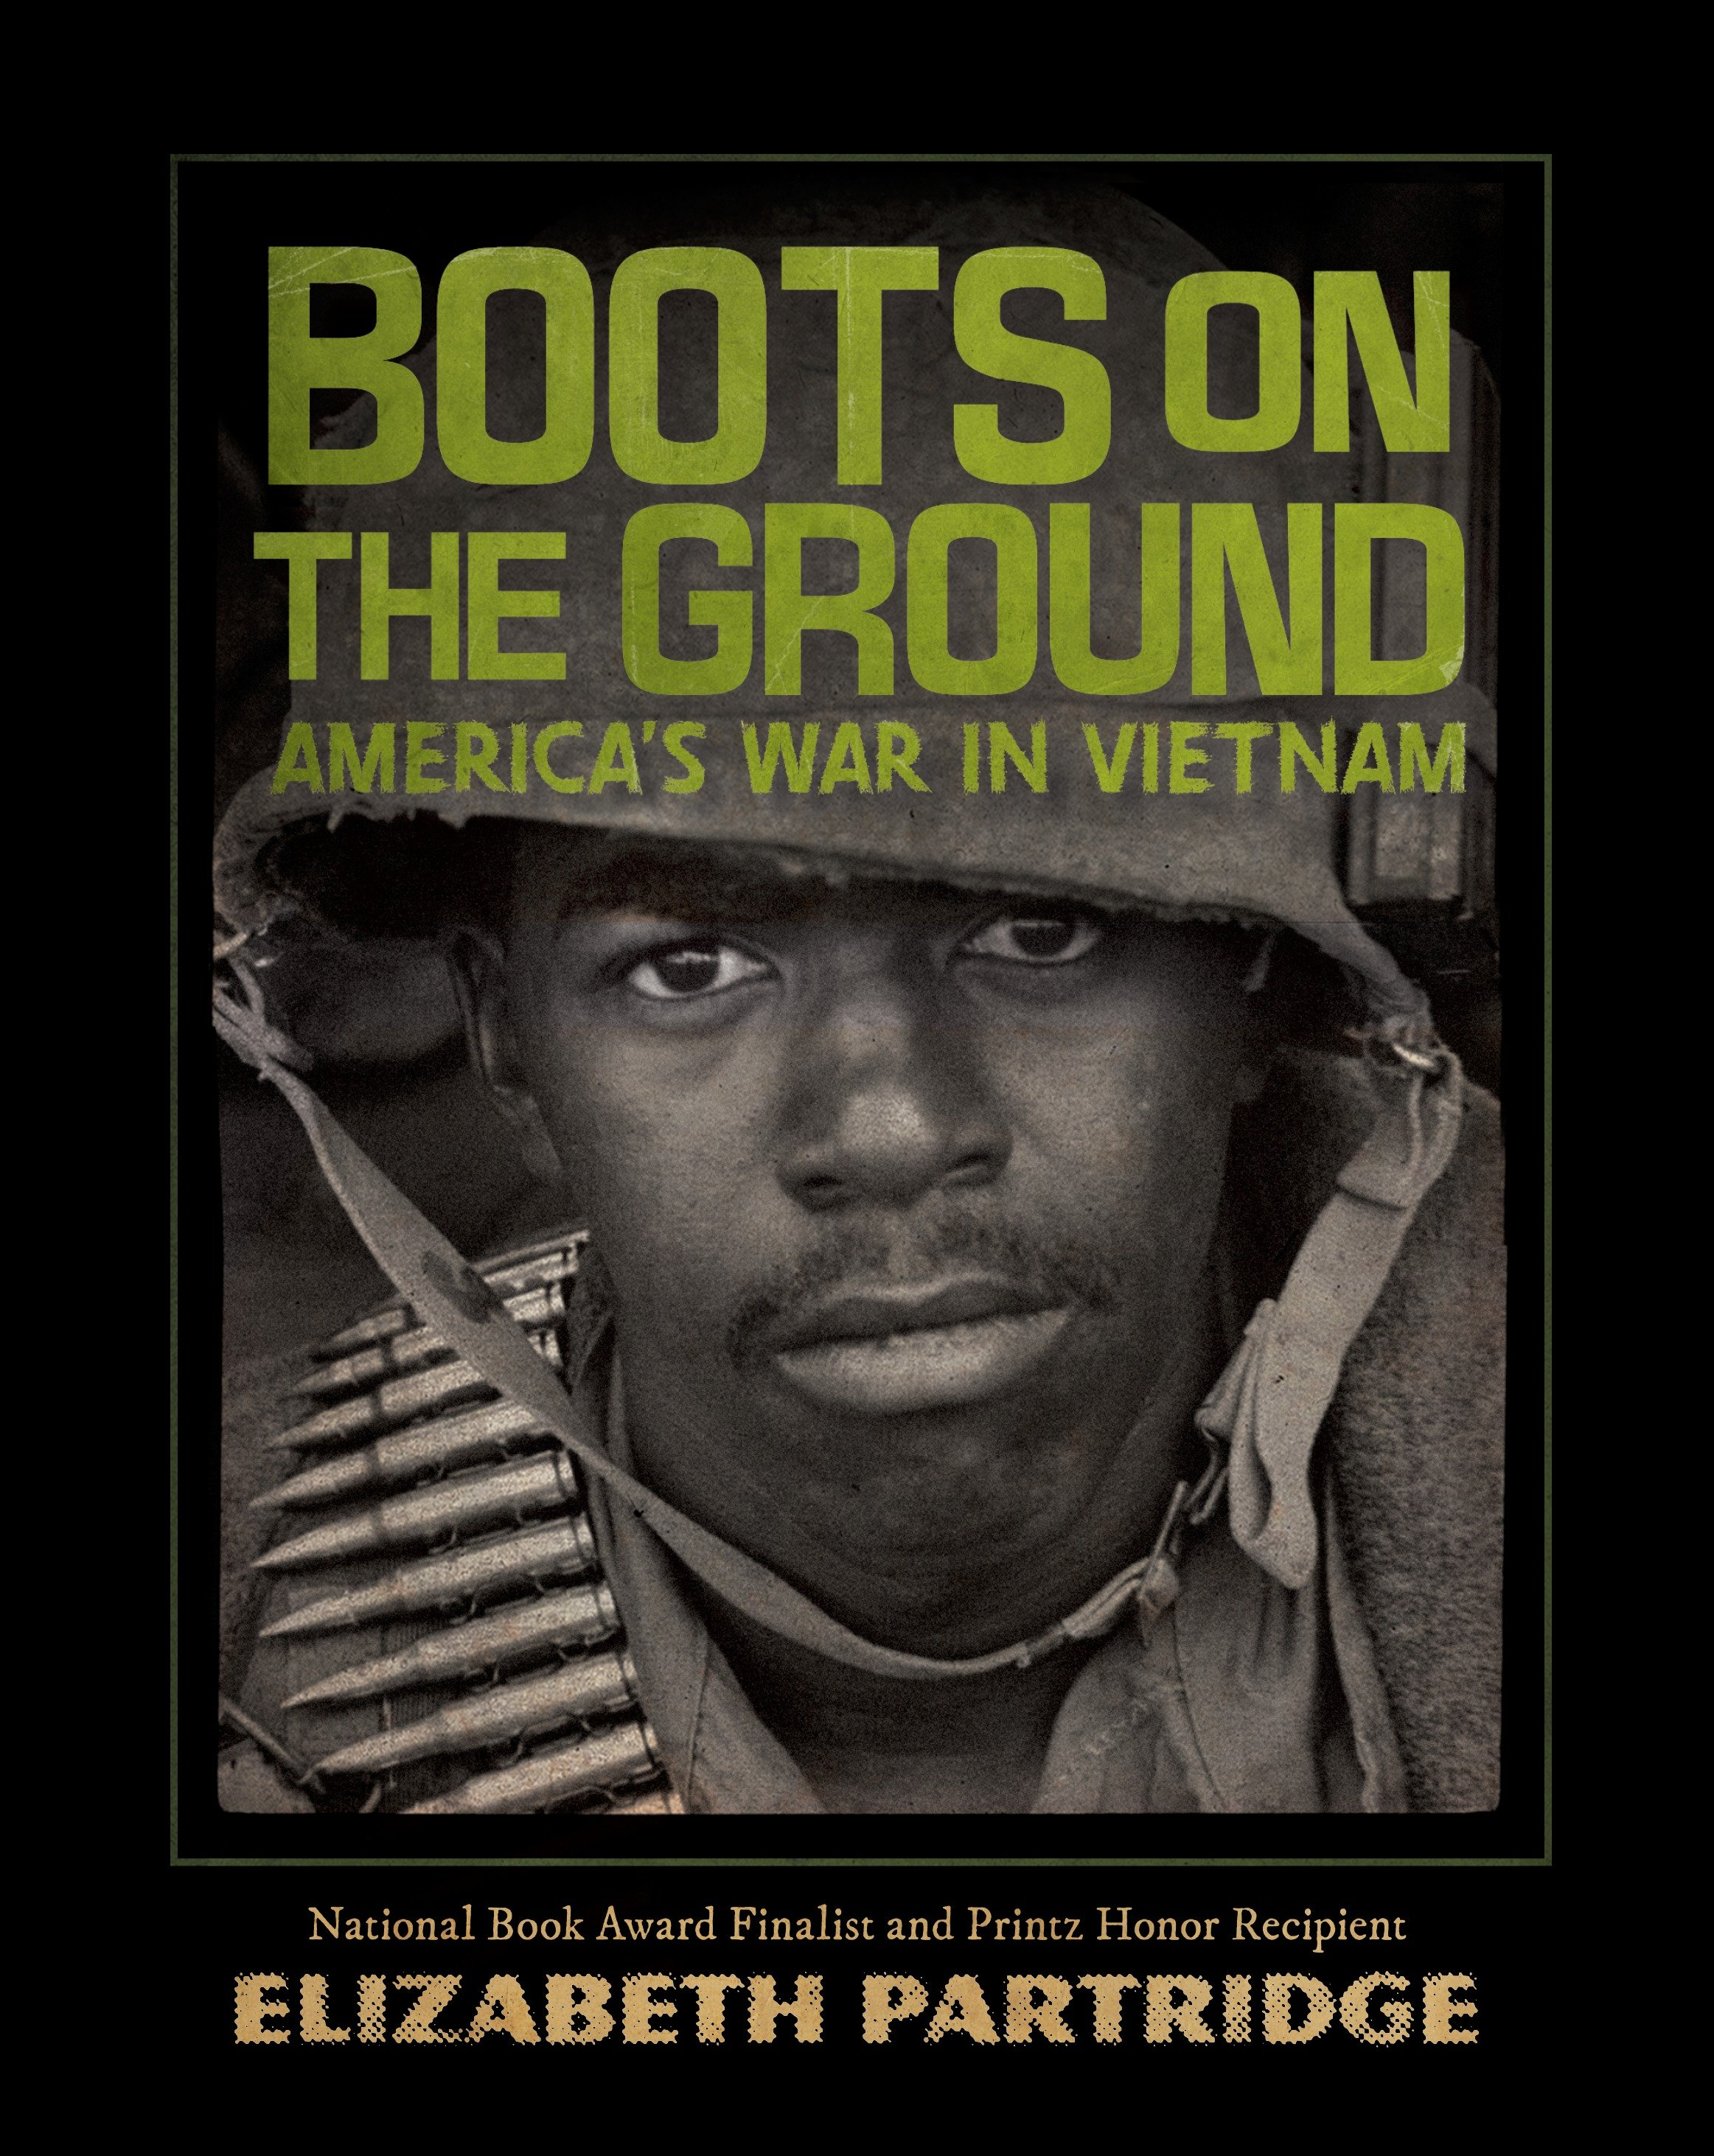 Boots on the Ground America's War in Vietnam